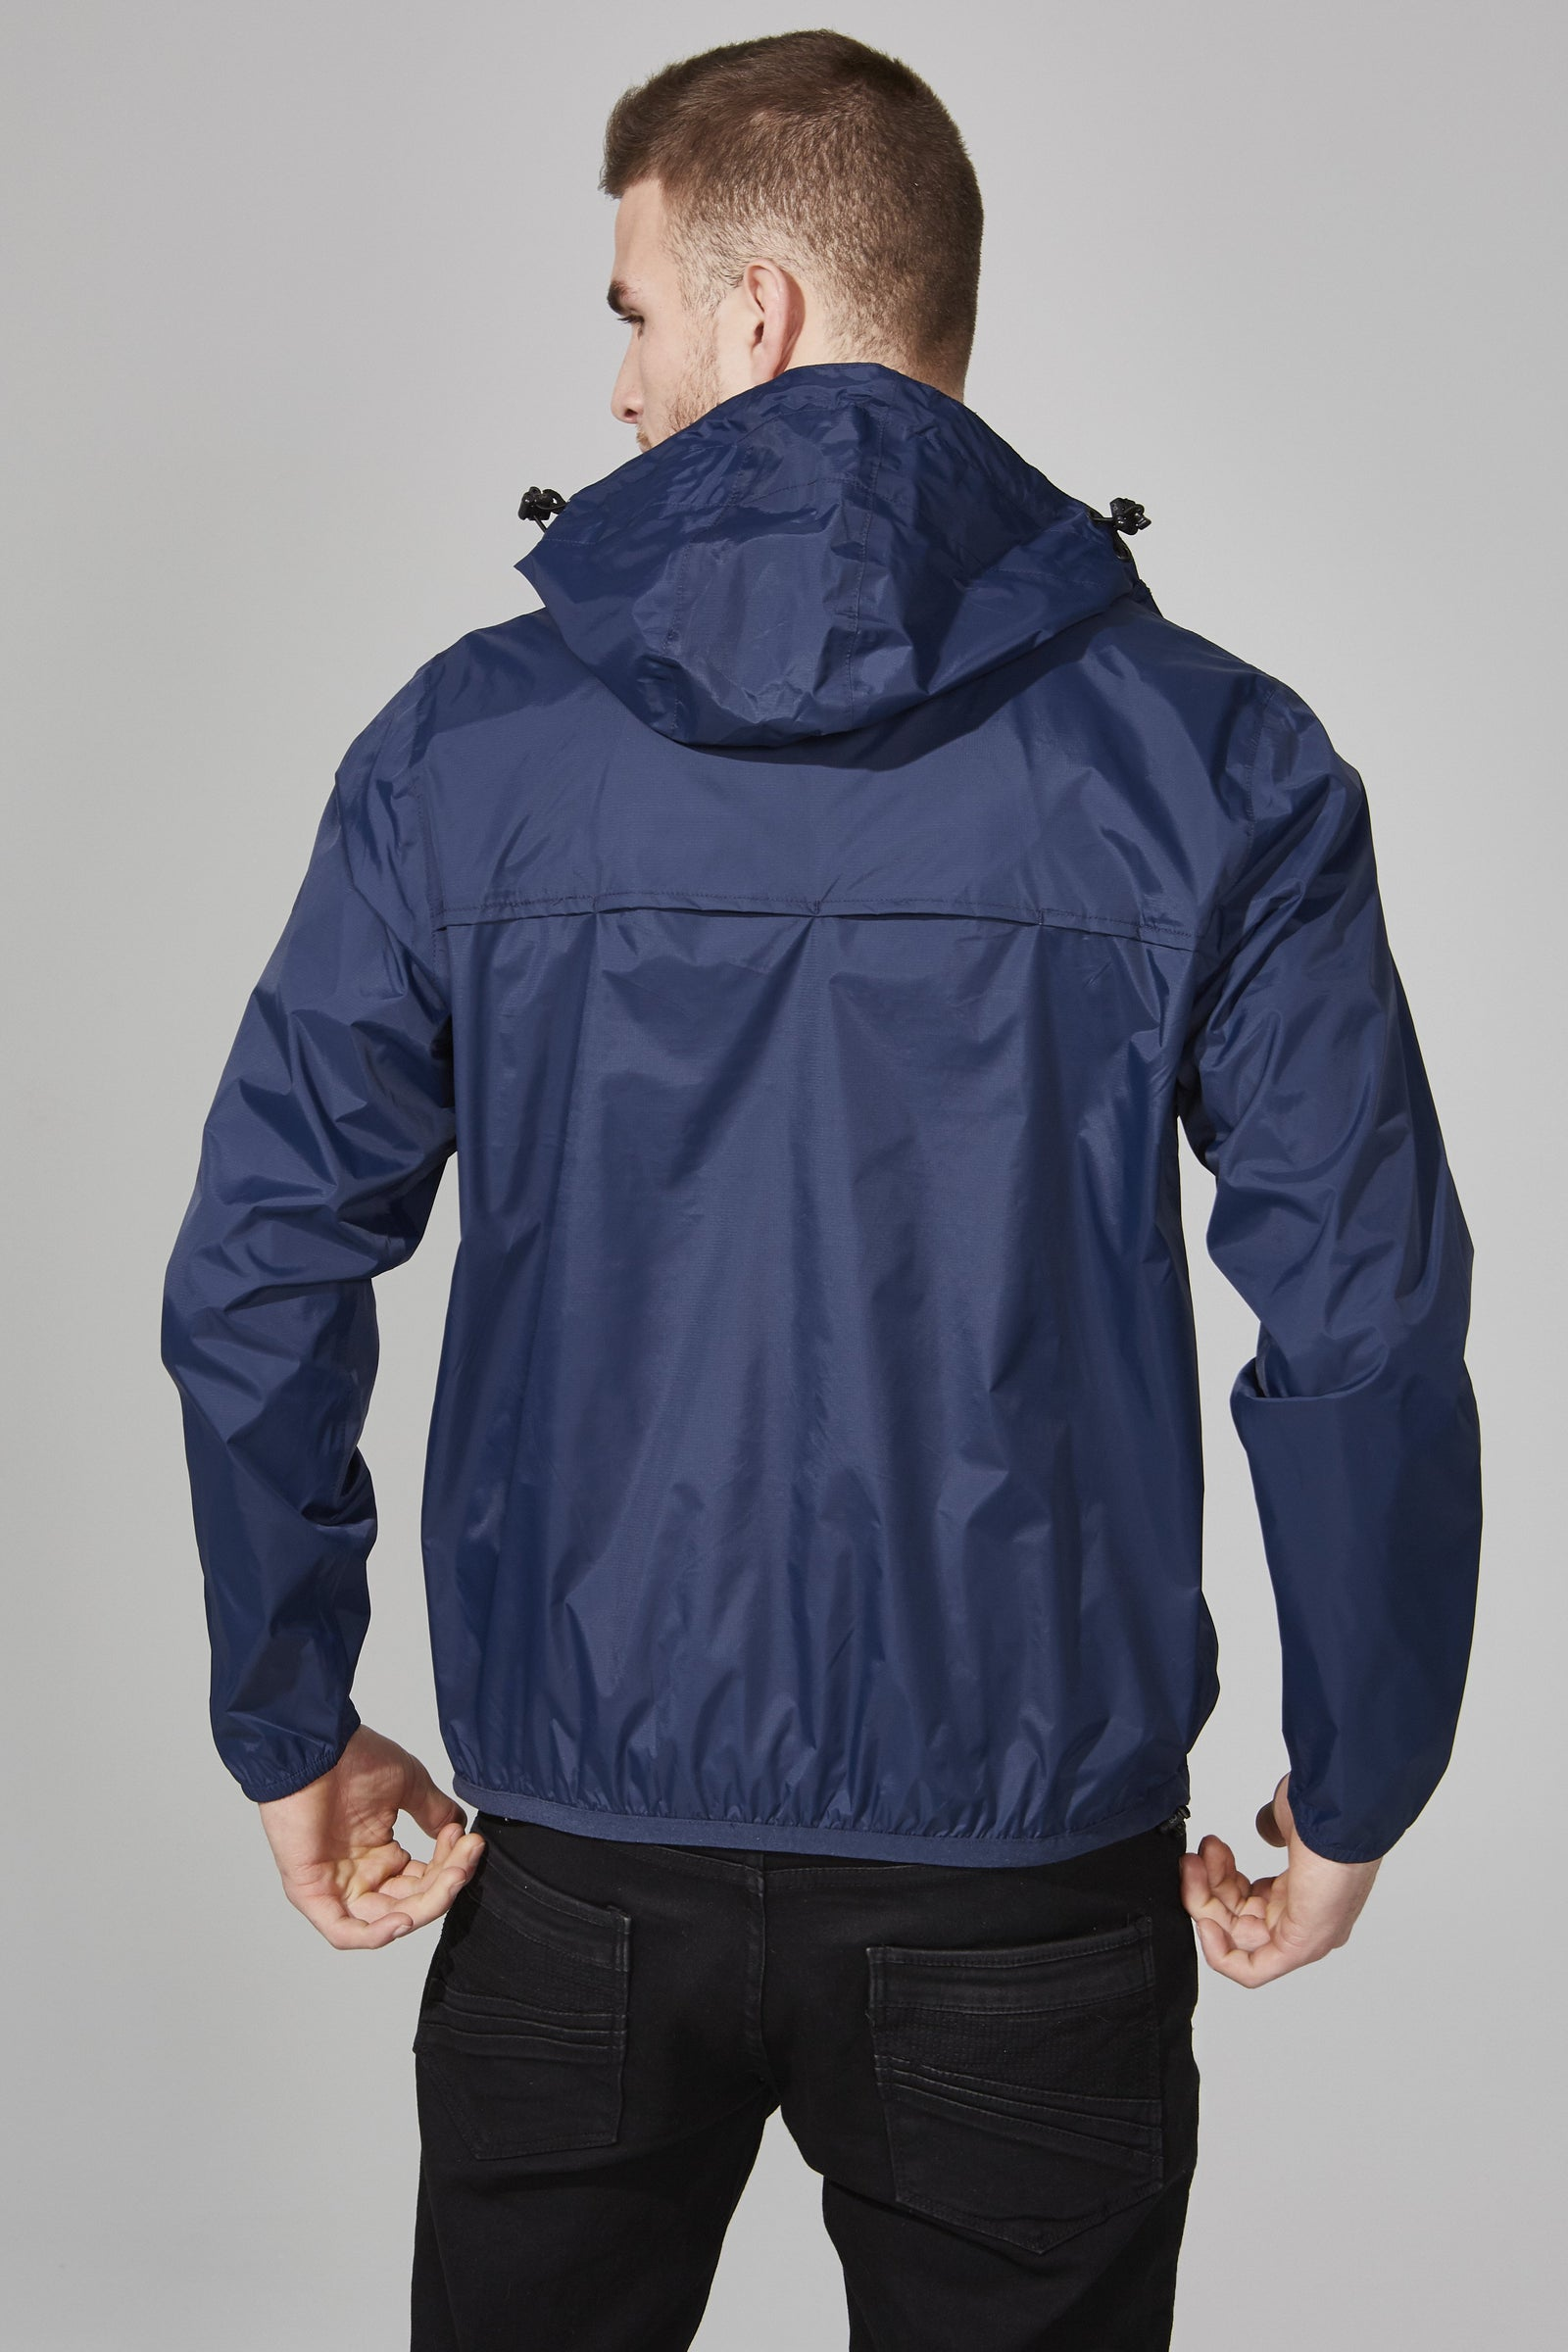 2cd6713bb Navy Quarter Zip Packable Rain Jacket | Man rain jacket | O8lifestyle